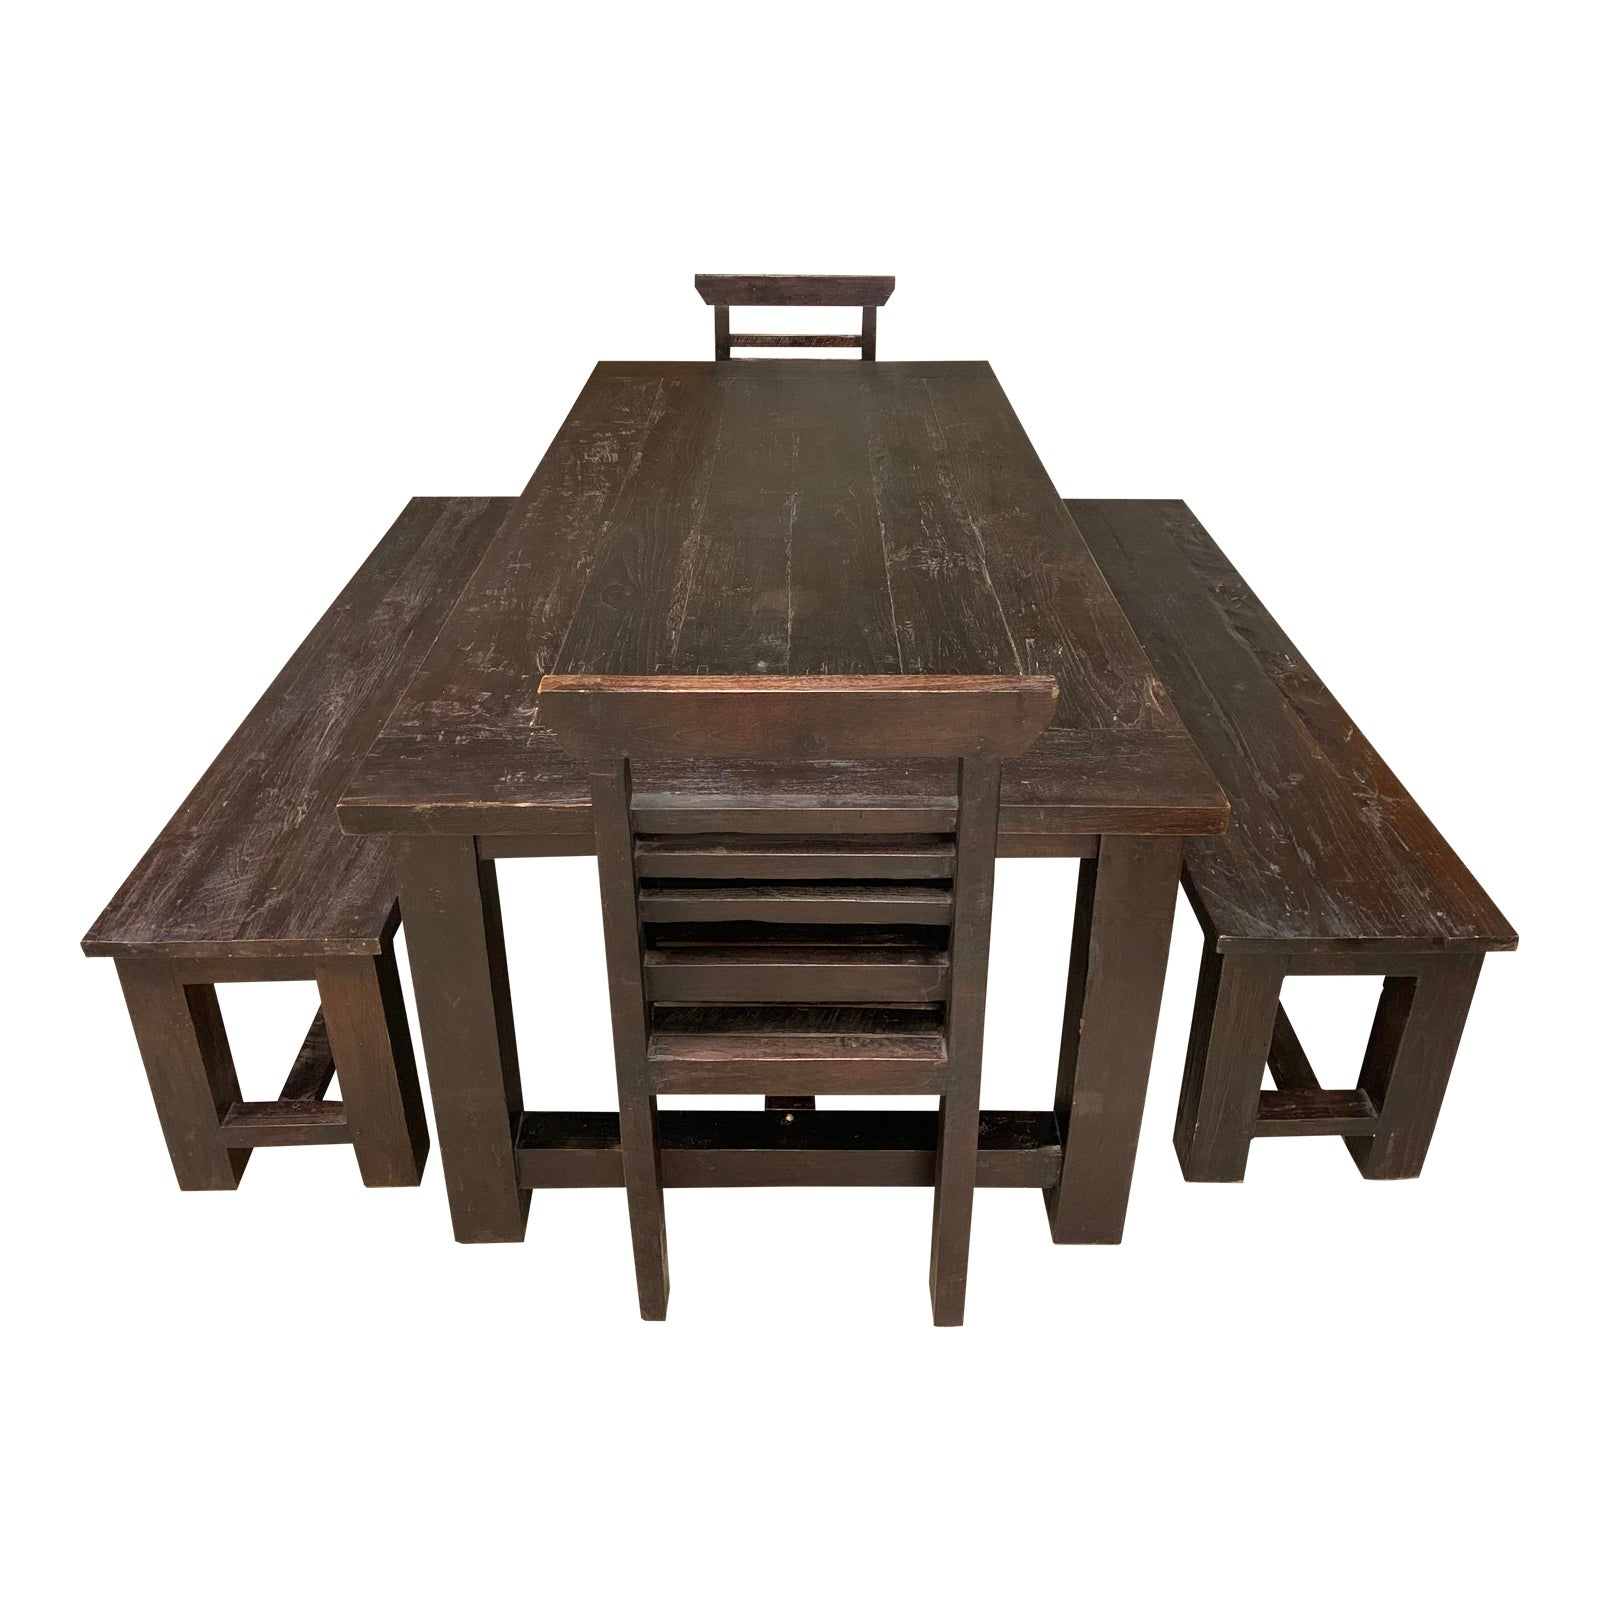 Astounding Handcrafted Teak Table Two Benches Two Chairs Gmtry Best Dining Table And Chair Ideas Images Gmtryco